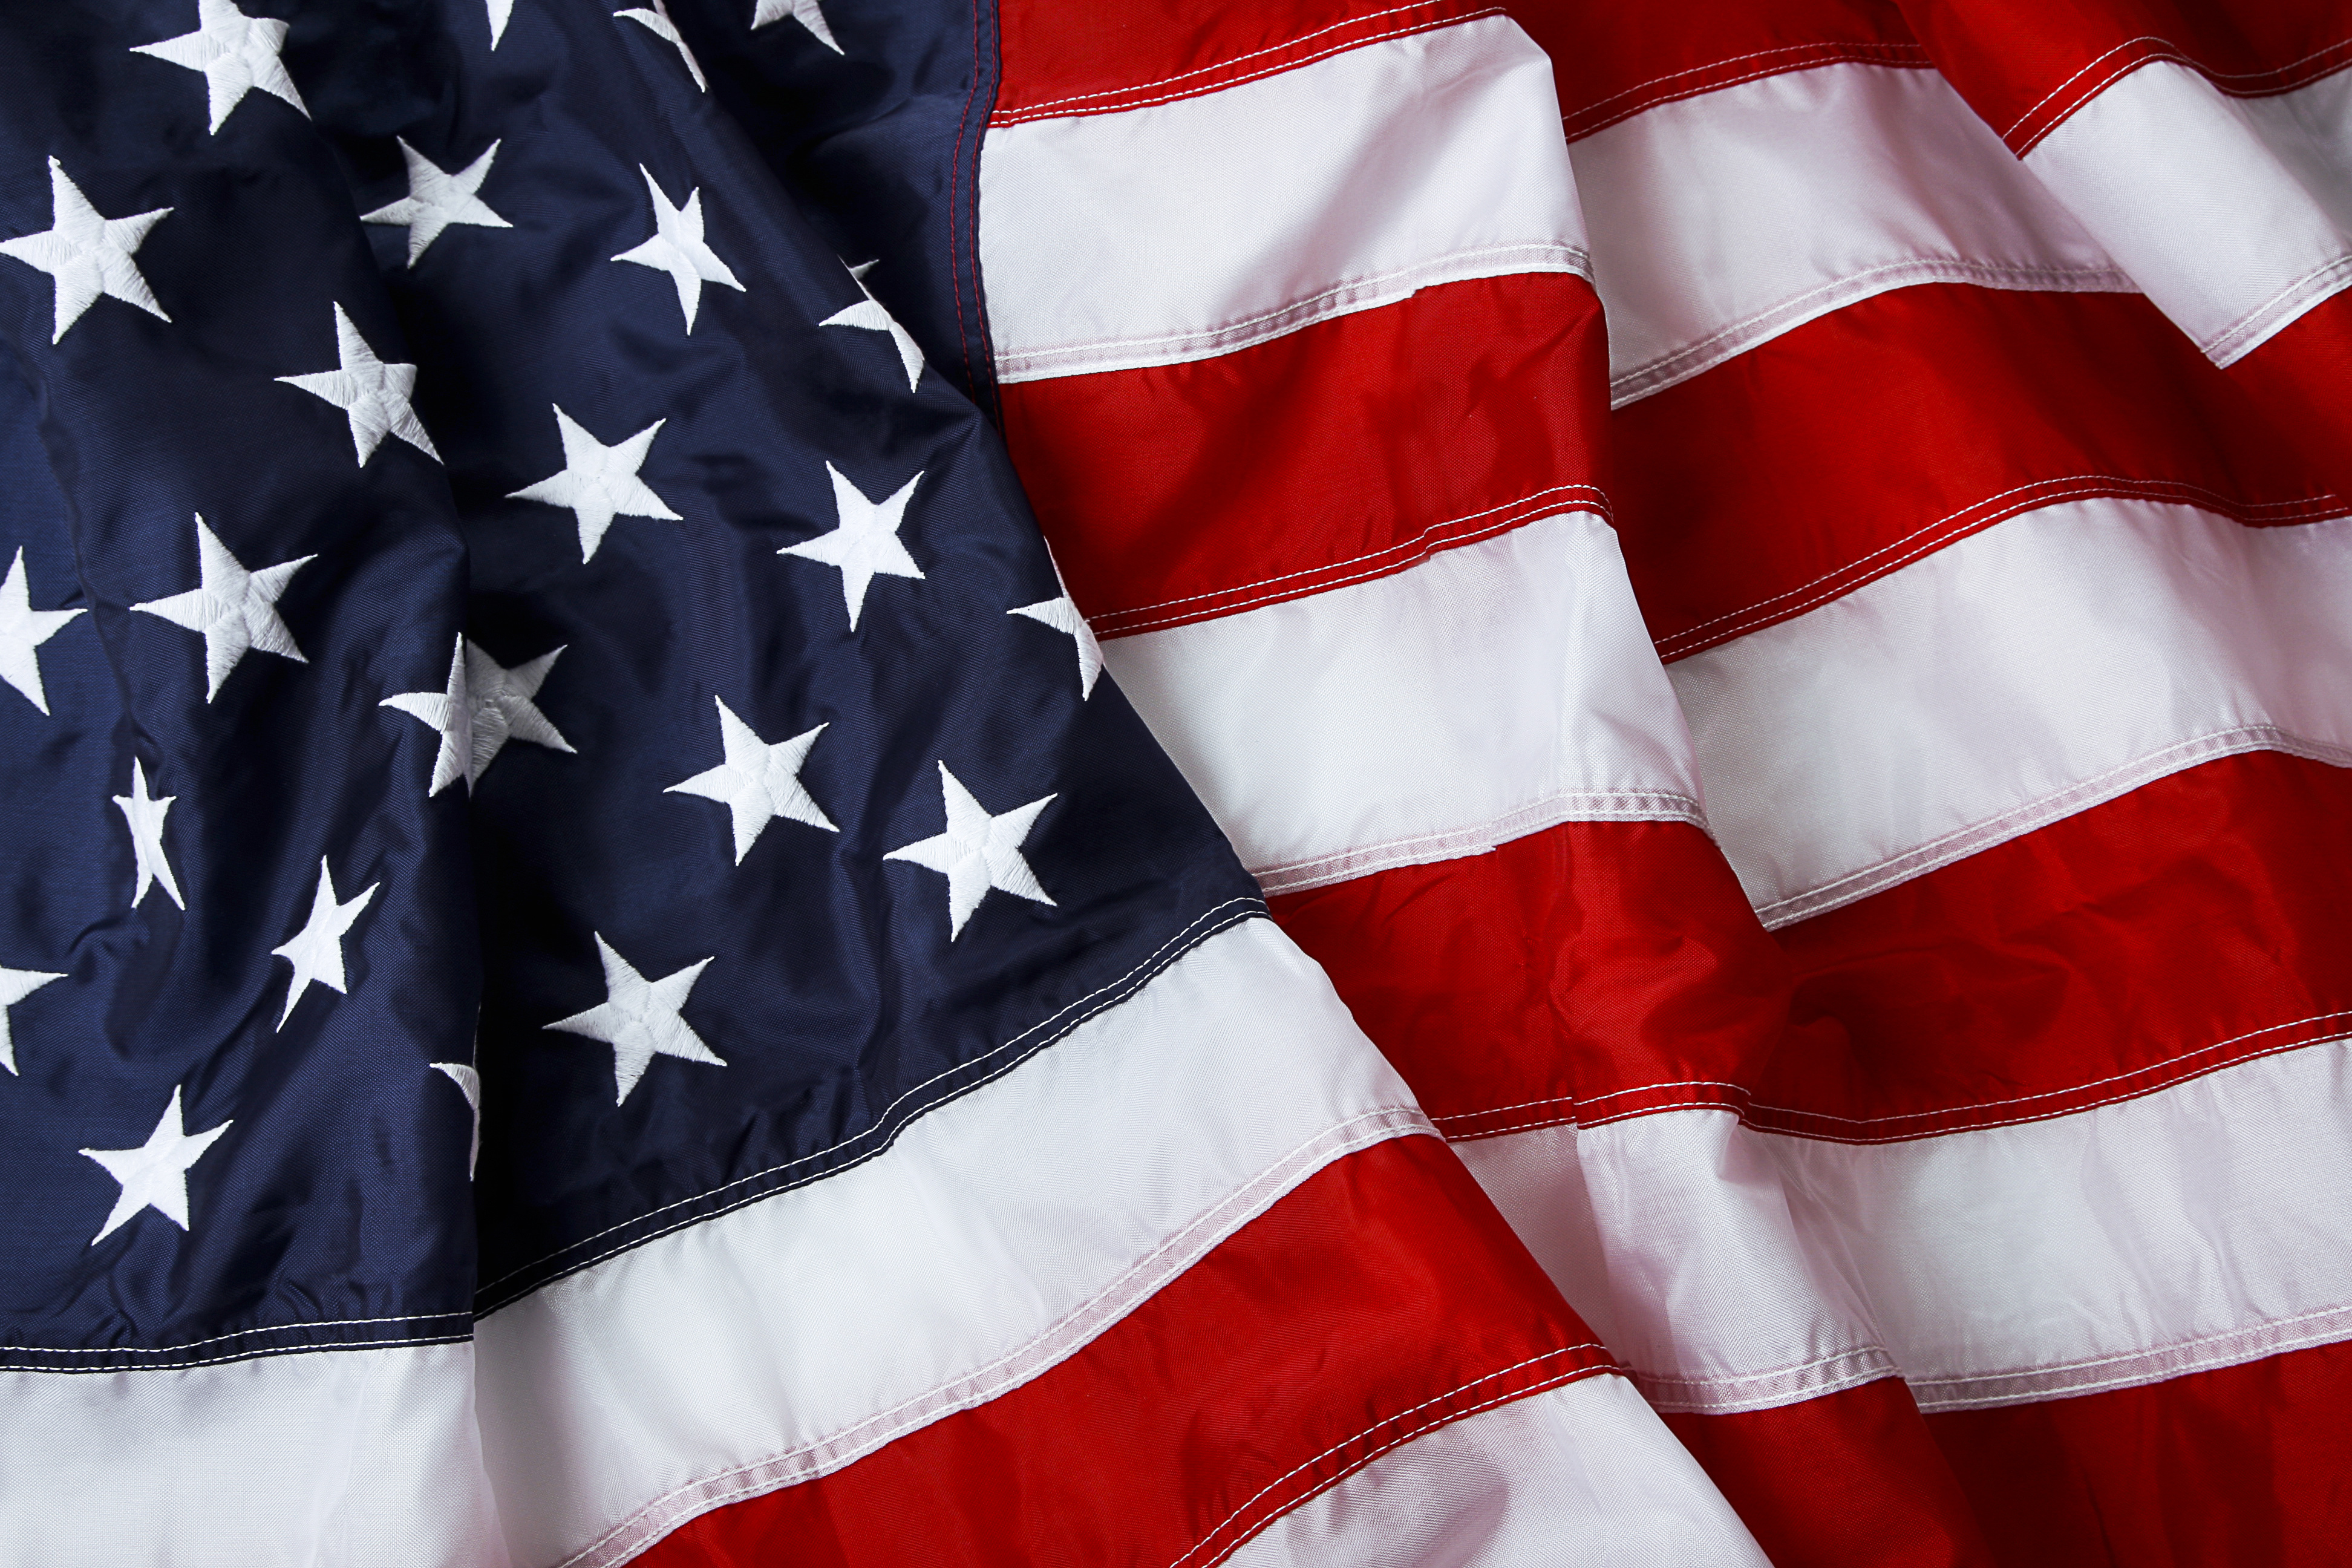 Happy 4th of July Flag Image